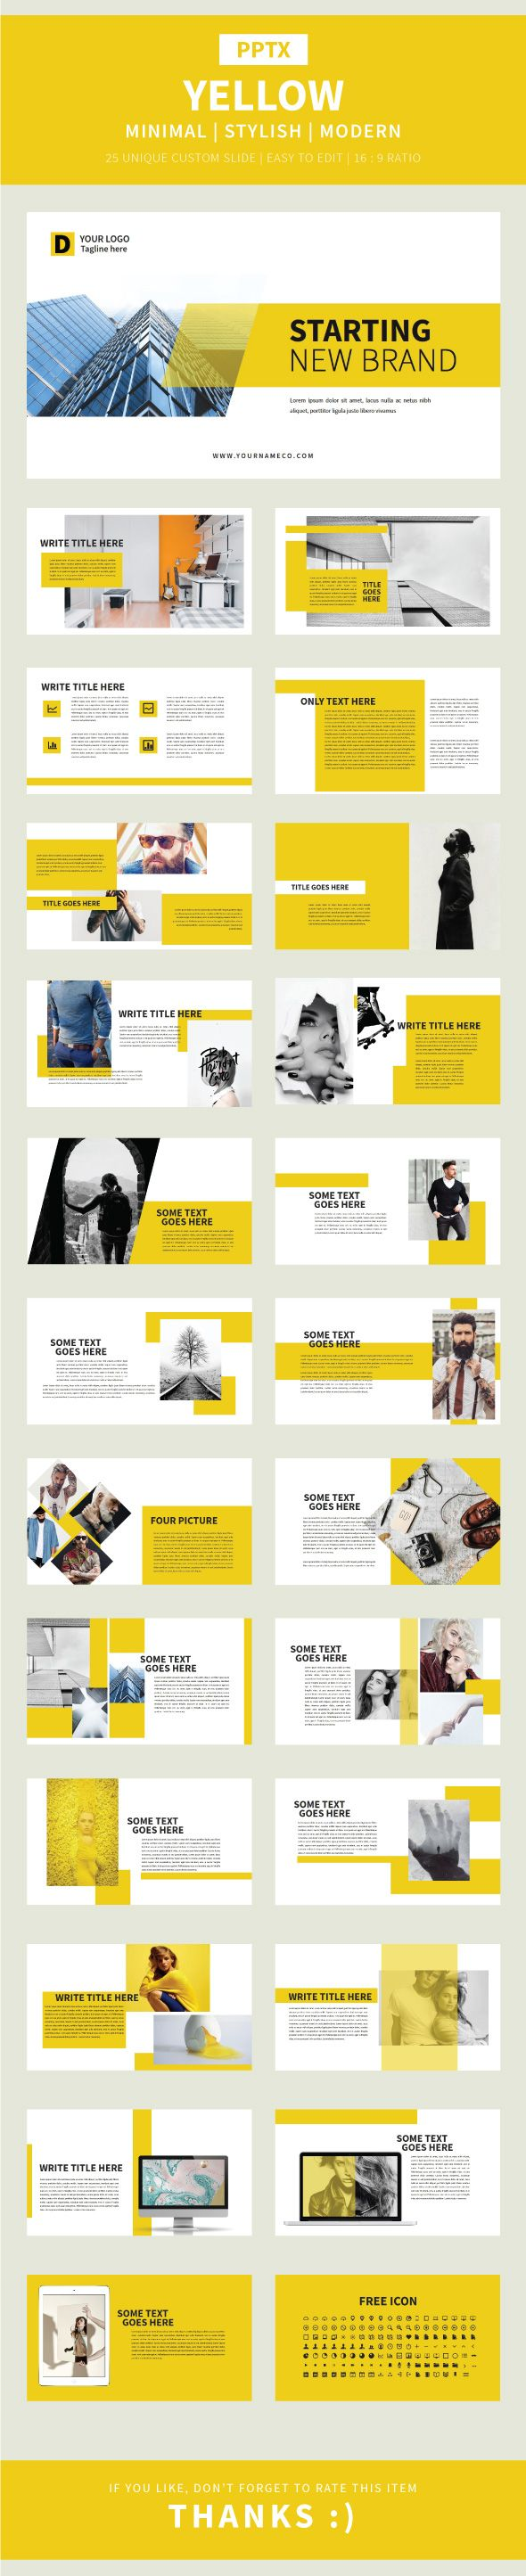 Yellow Pptx Template - Finance #PowerPoint #Templates Download here: https://graphicriver.net/item/yellow-pptx-template/20474702?ref=alena994